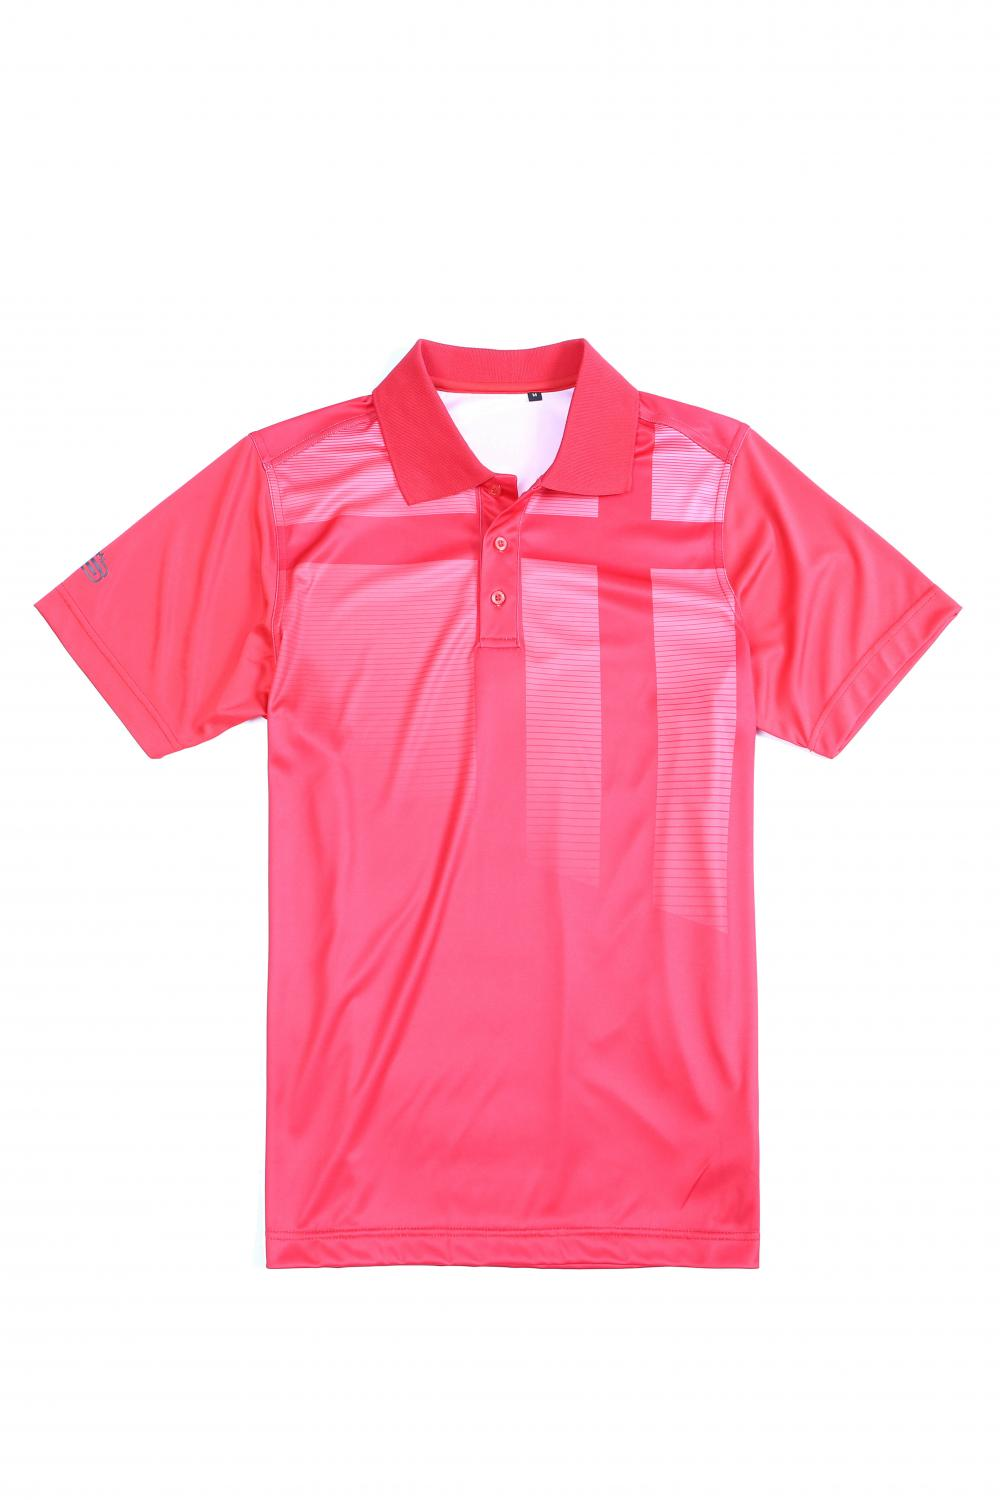 Men's golfer polo